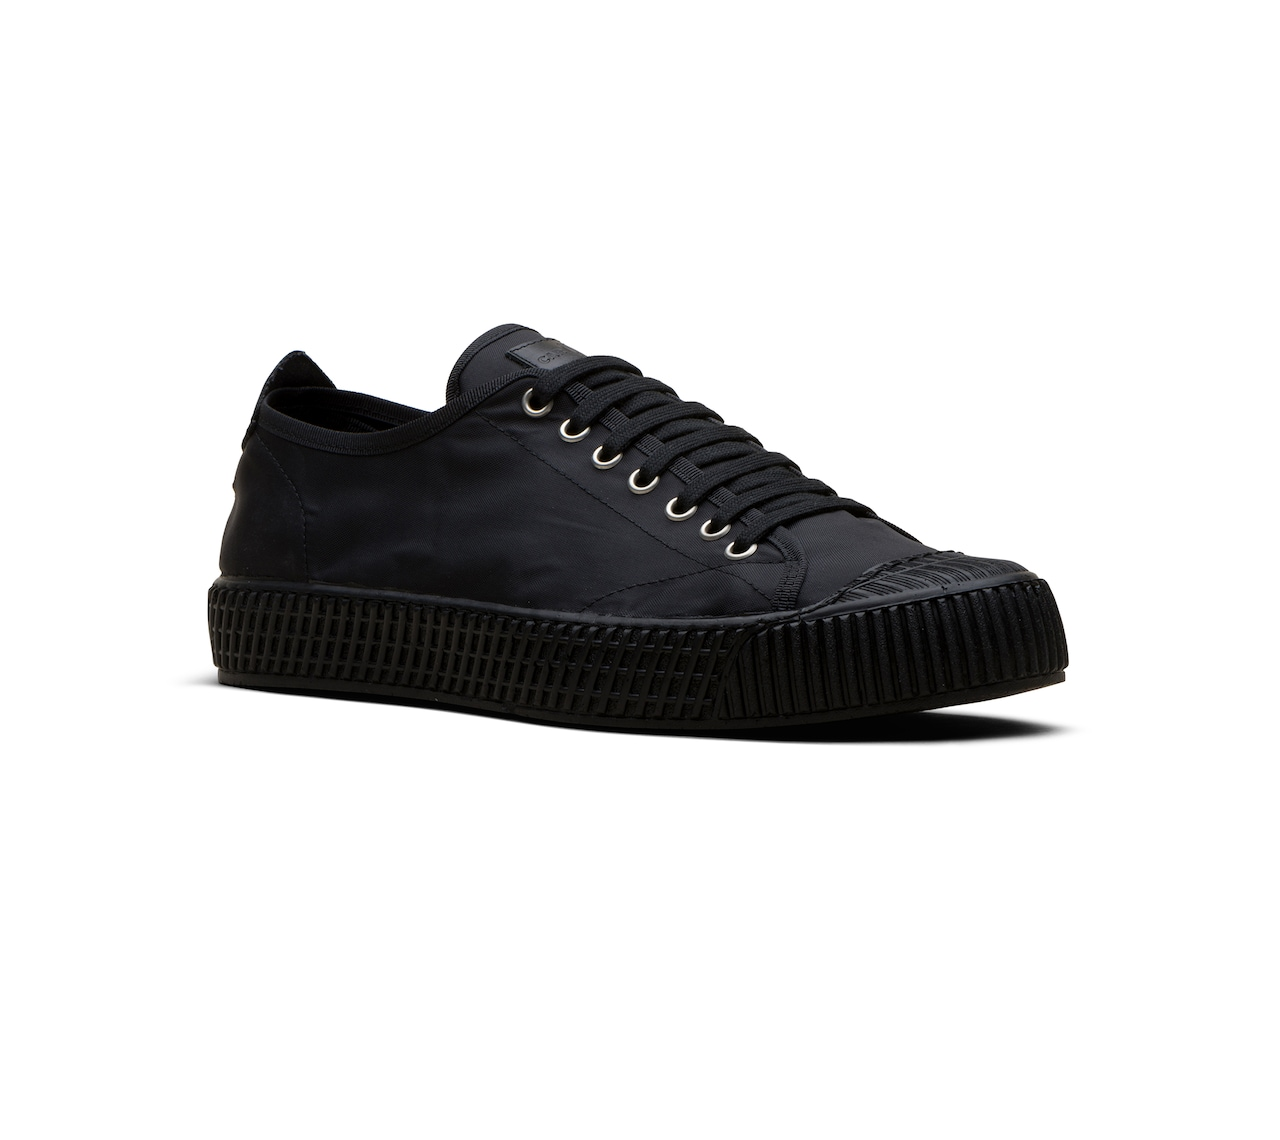 SNEAKER IN NYLON NERO